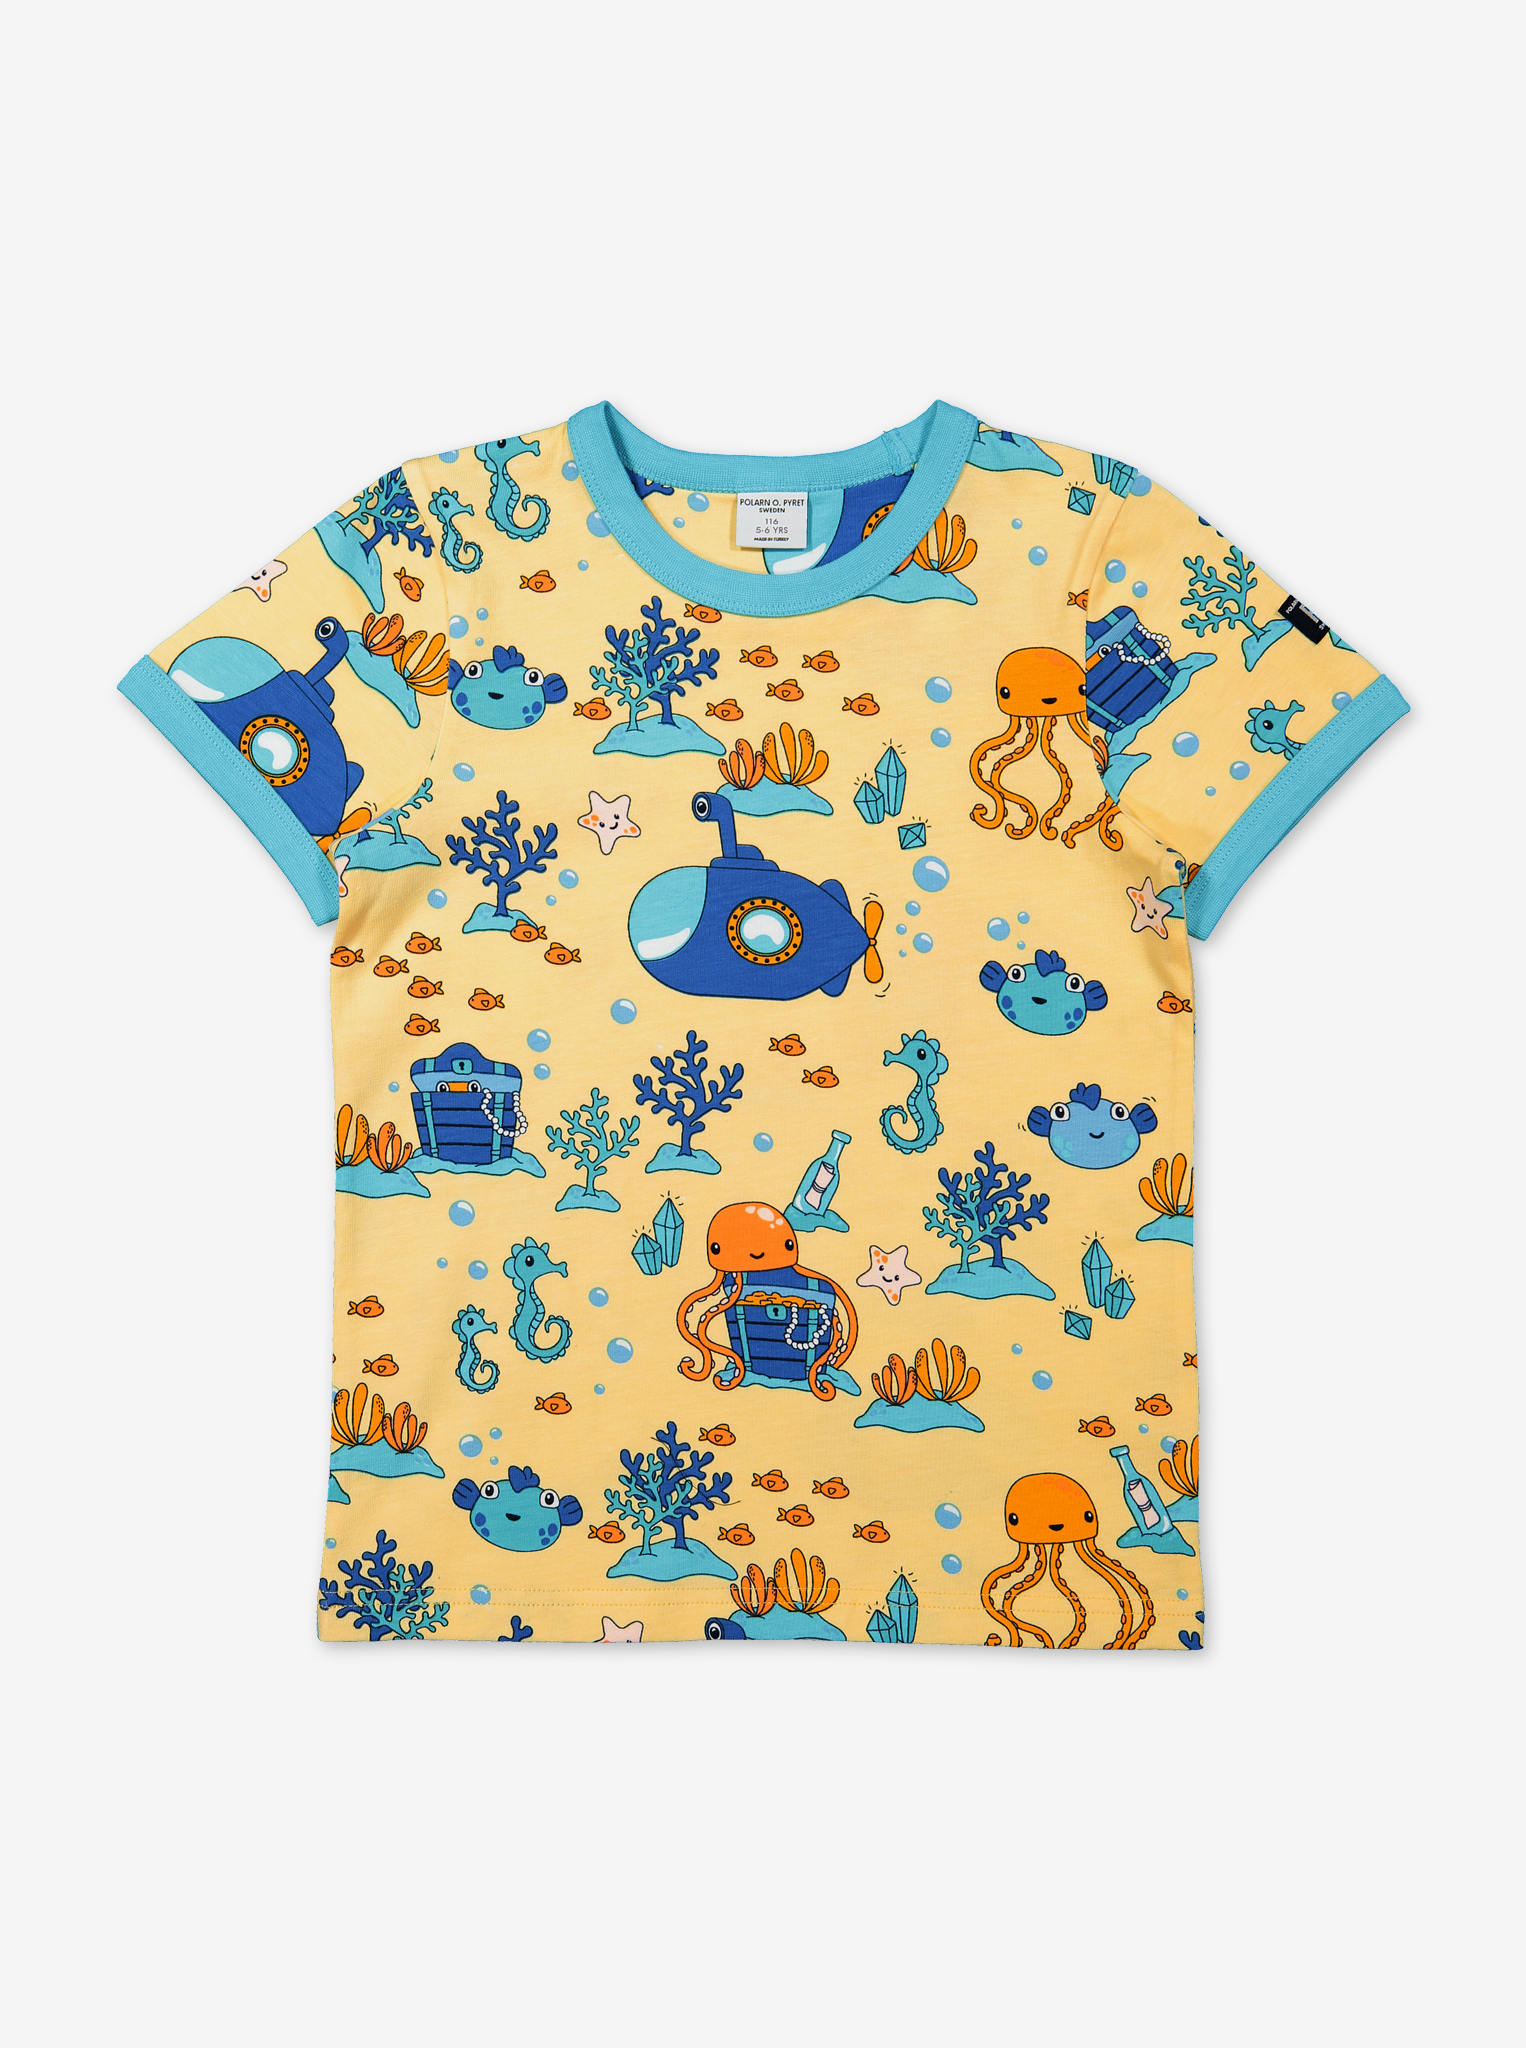 Underwater Print Kids T-Shirt-Boy-1-6y-Yellow